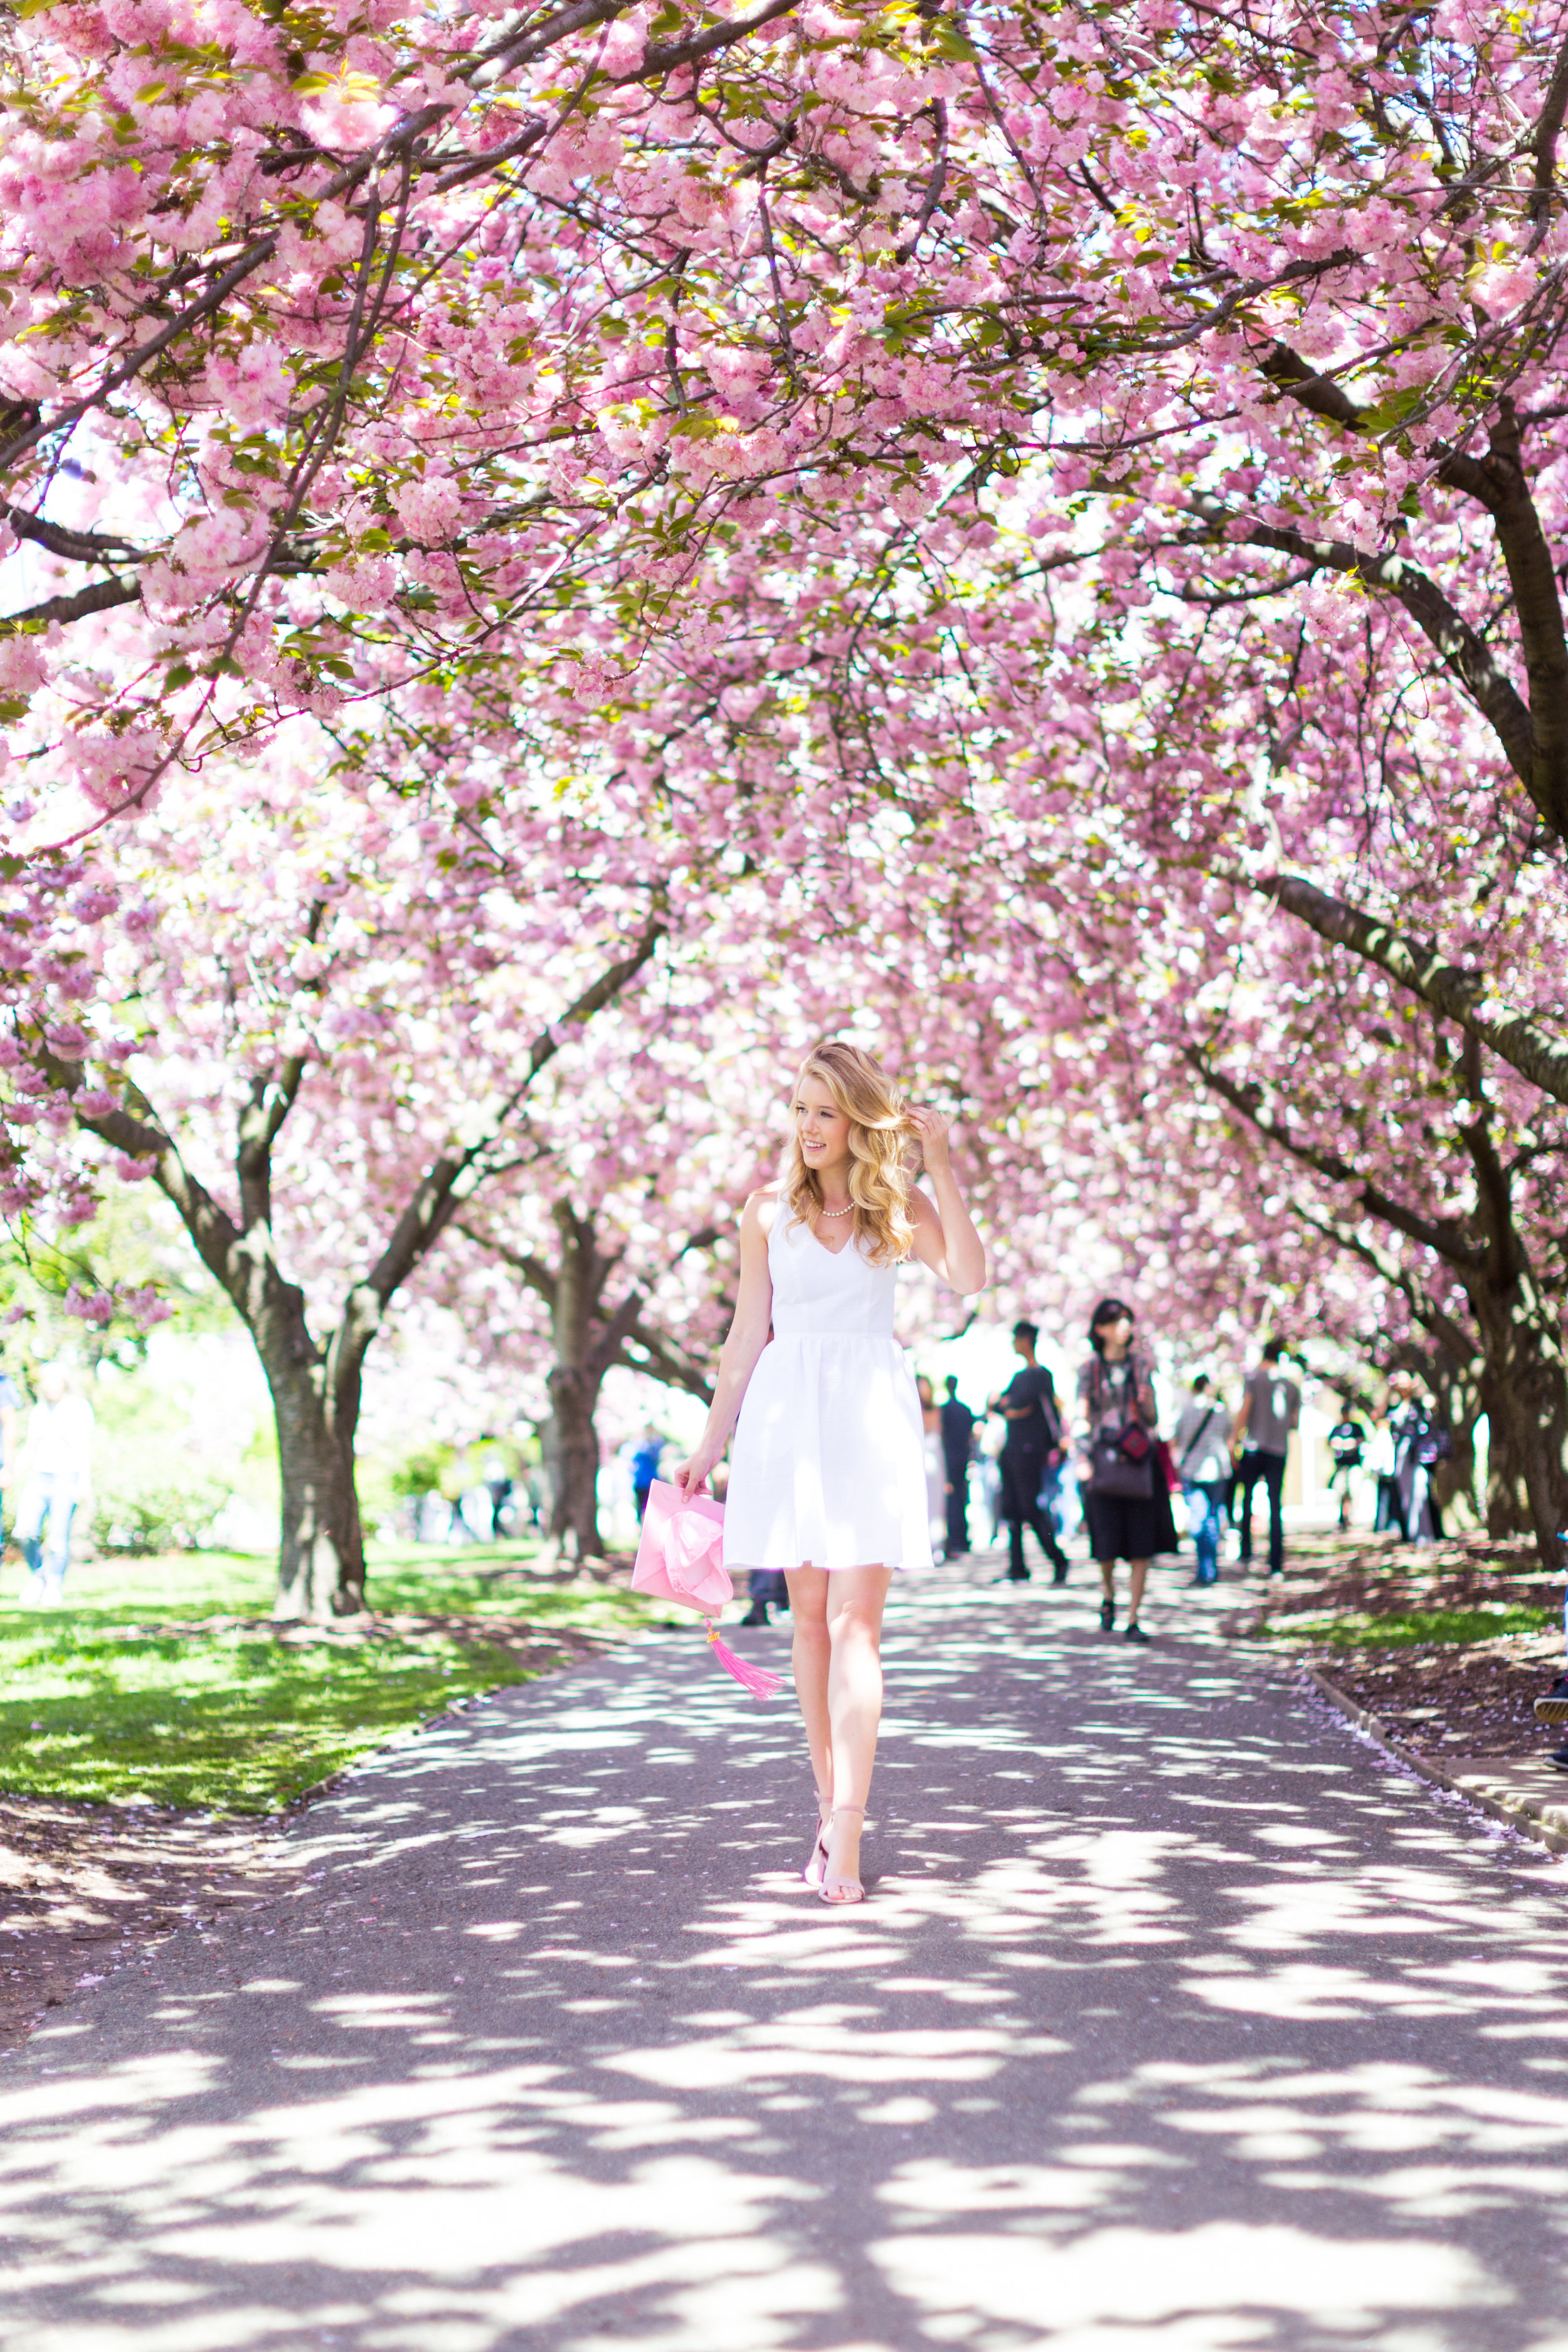 White Graduation Dress Spring Pink Cherry Blossoms NYC-21.jpg